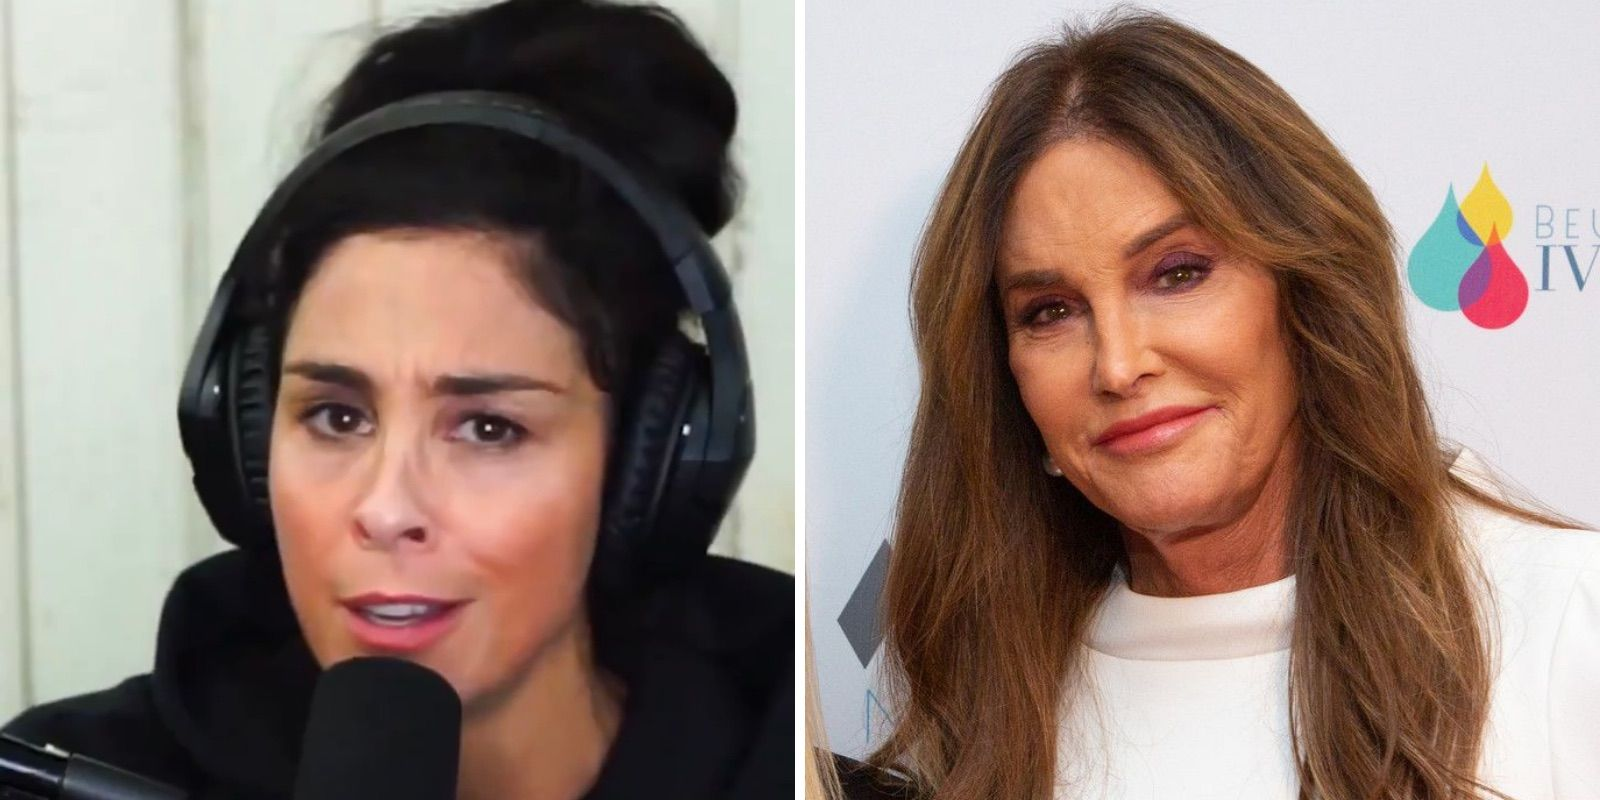 Sarah Silverman falsely claims there's no difference between biological males and females in failed attempt to shame Caitlyn Jenner